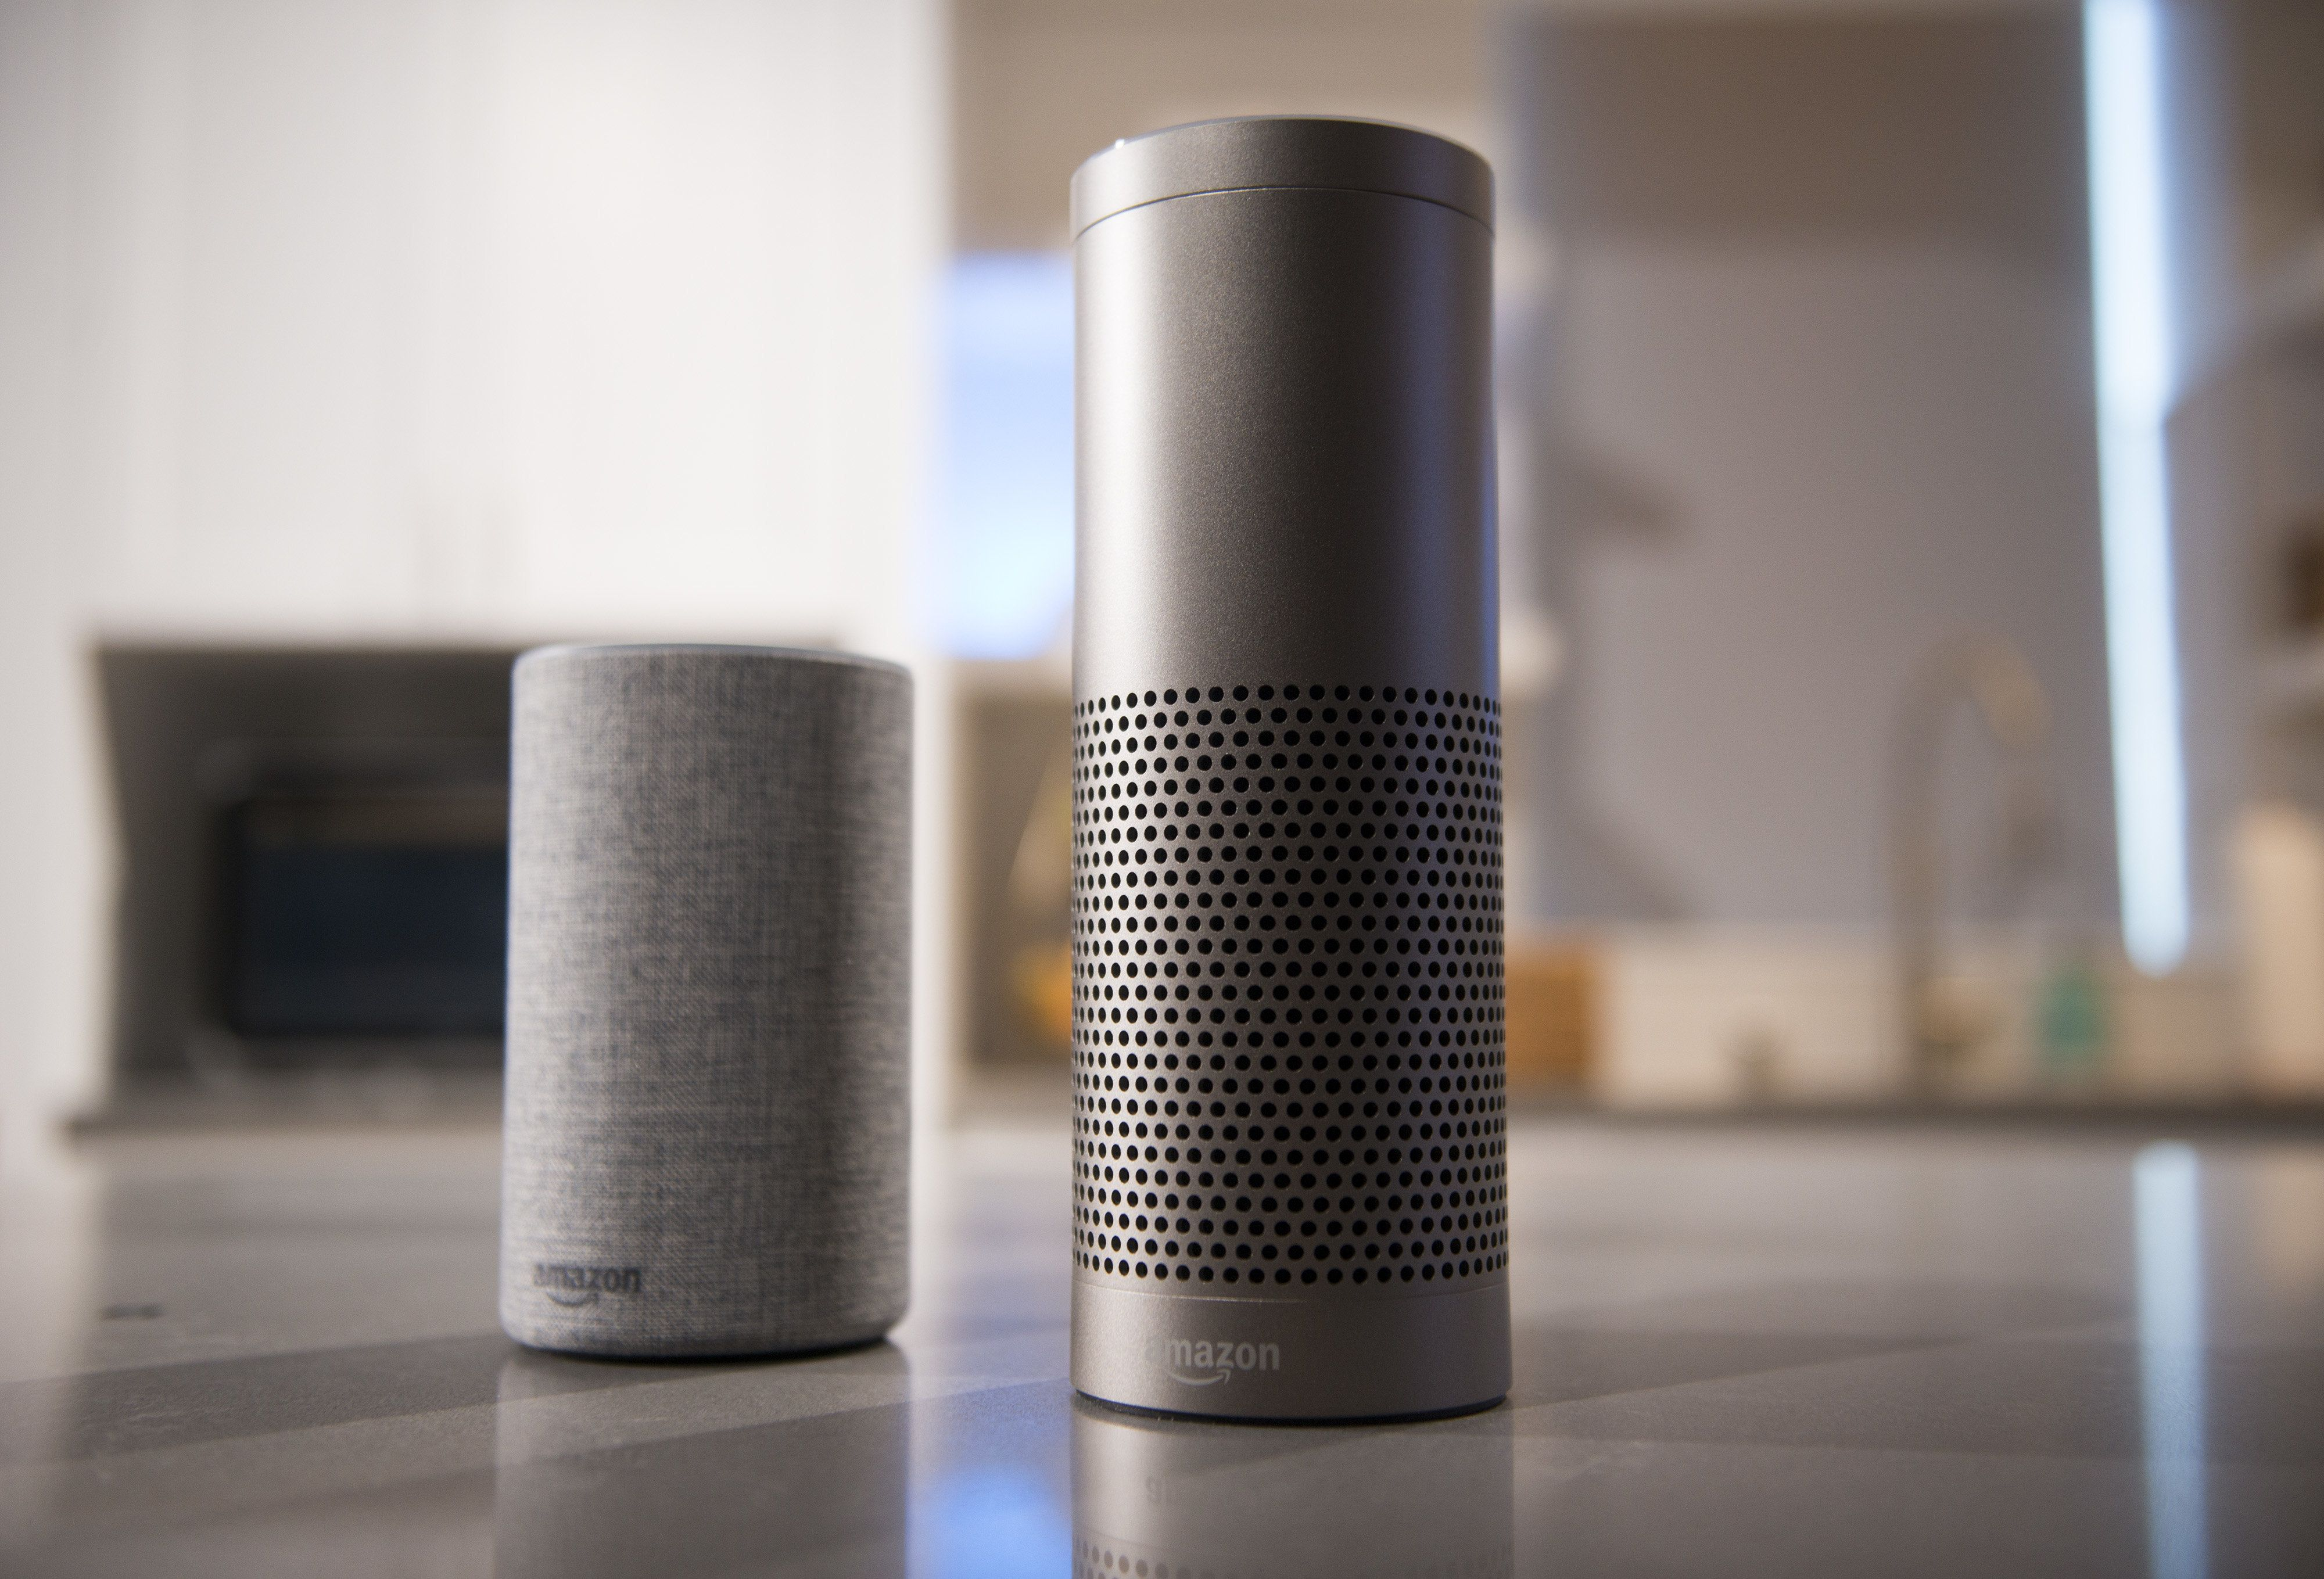 Amazon Has A Patent That Would Allow It To Listen In On Your